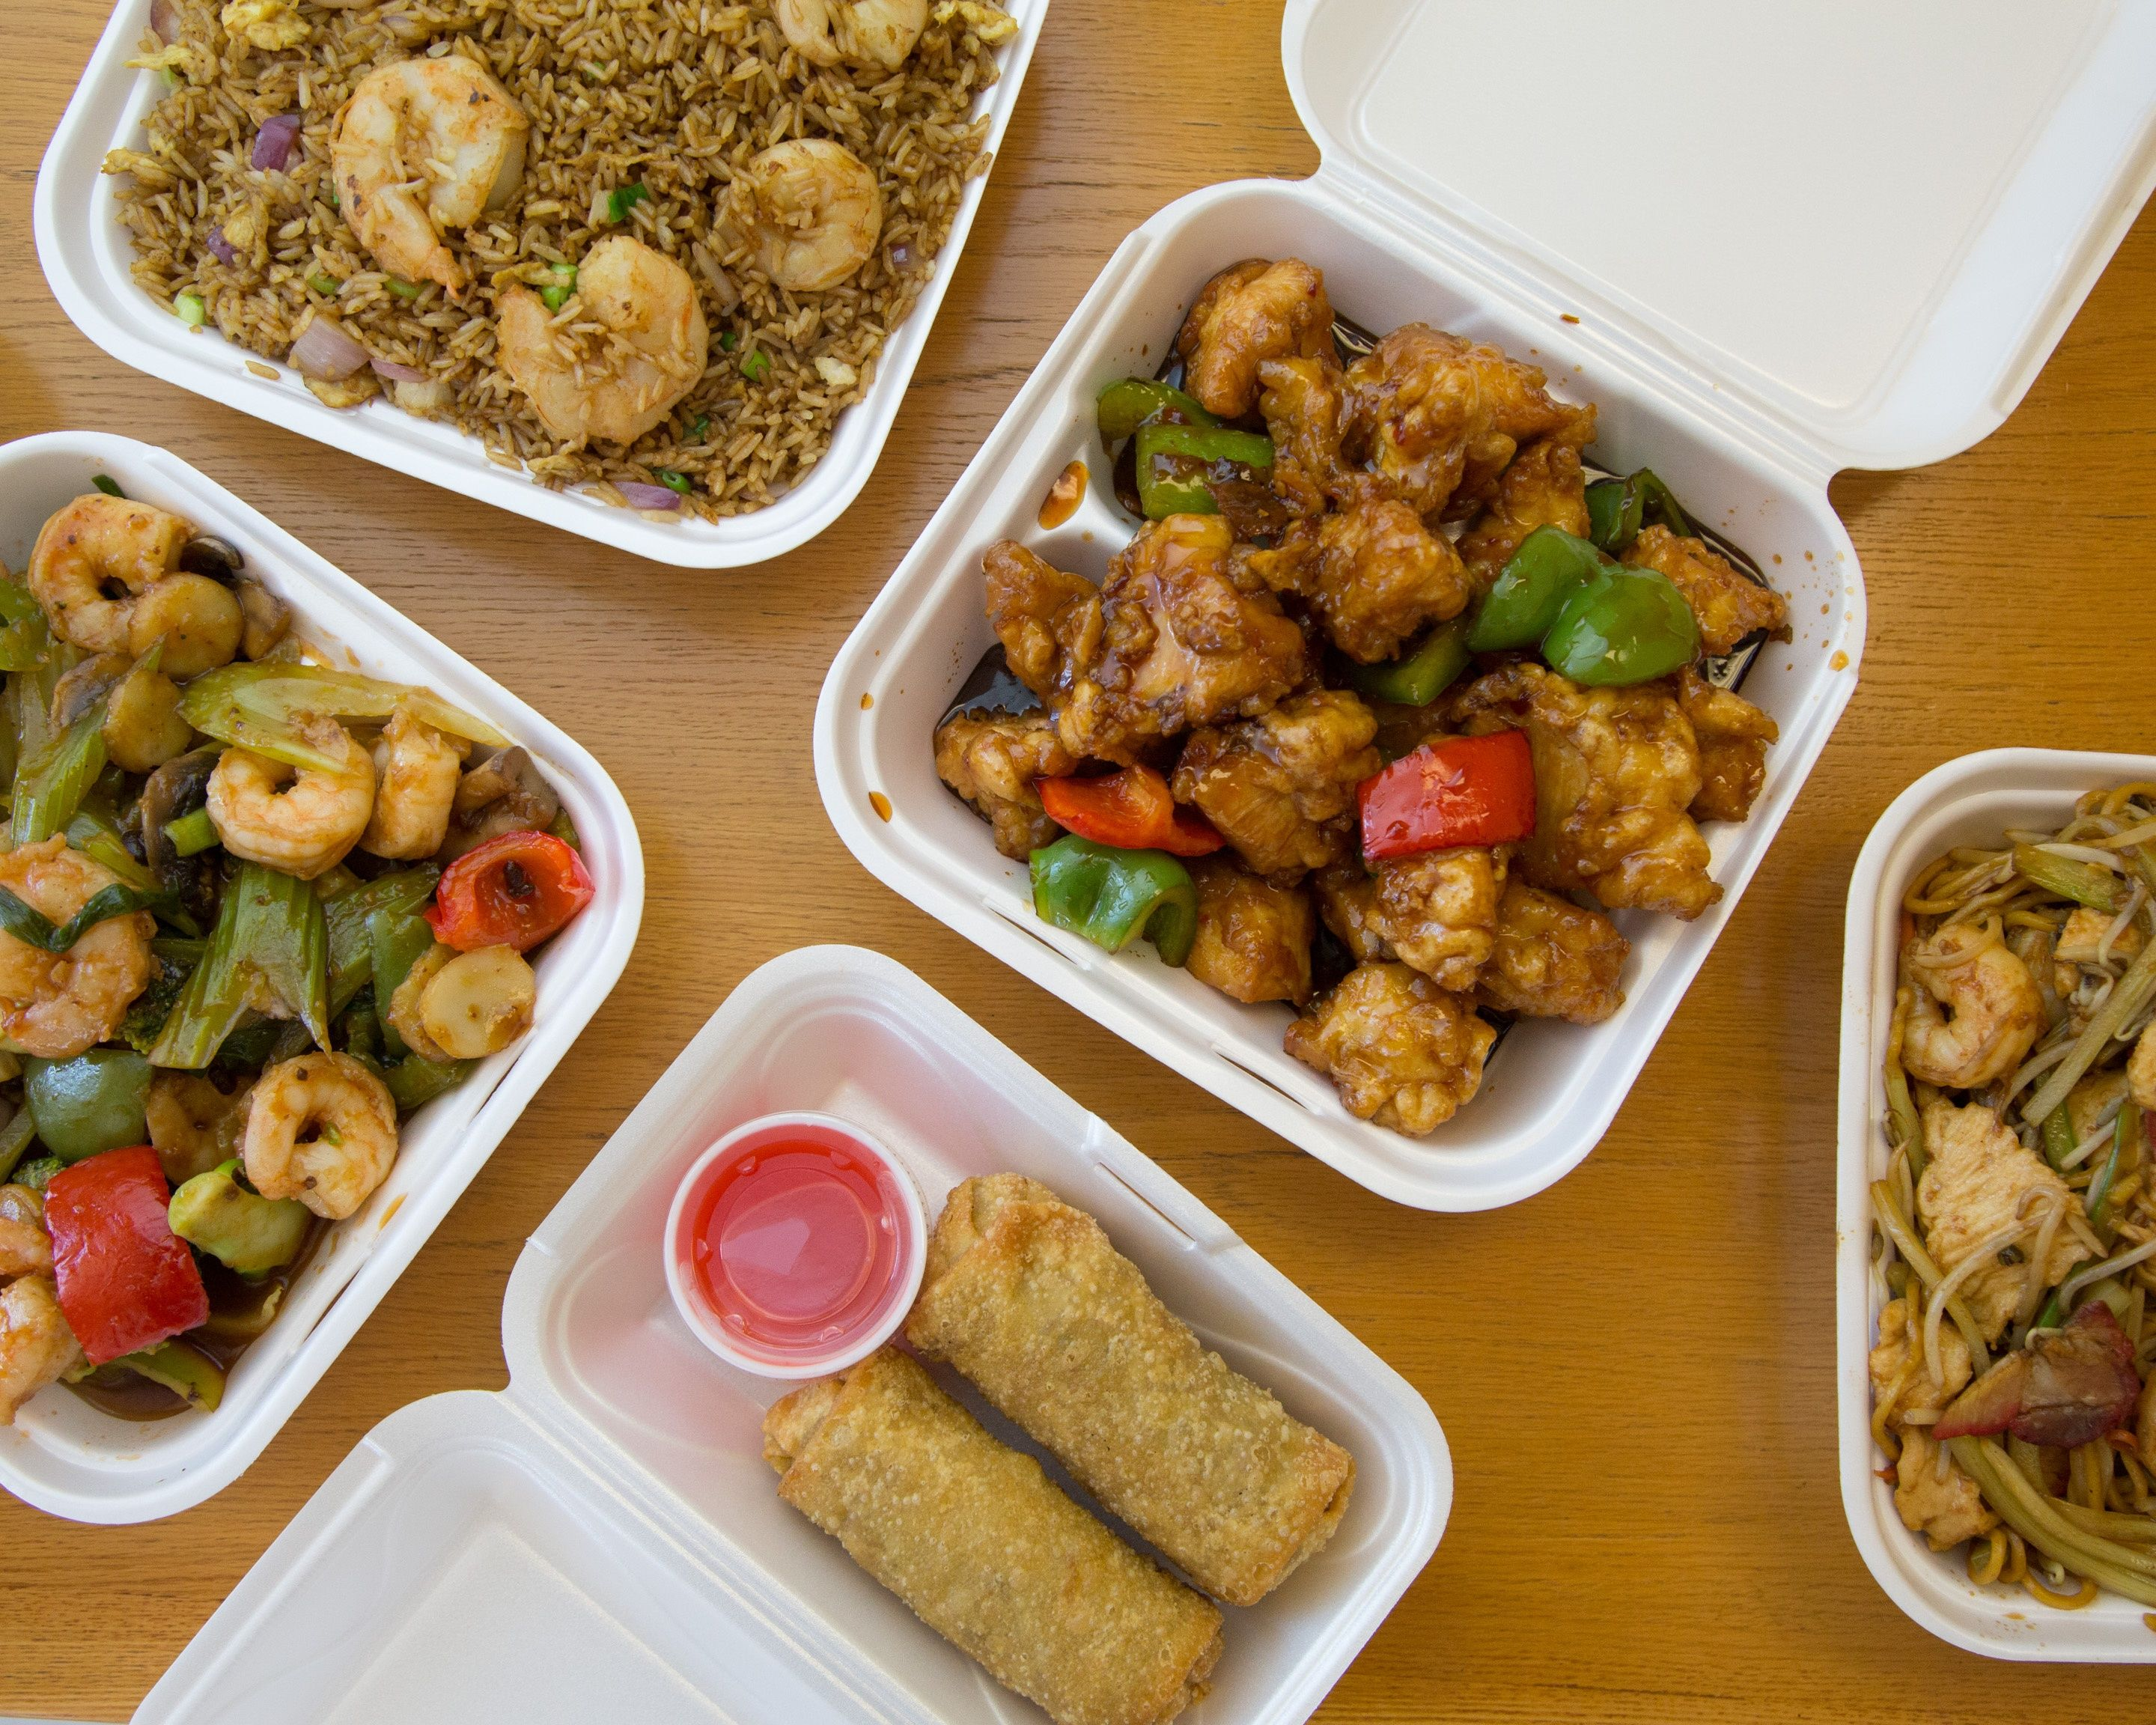 Byba: Delivery Of Chinese Food Near Me